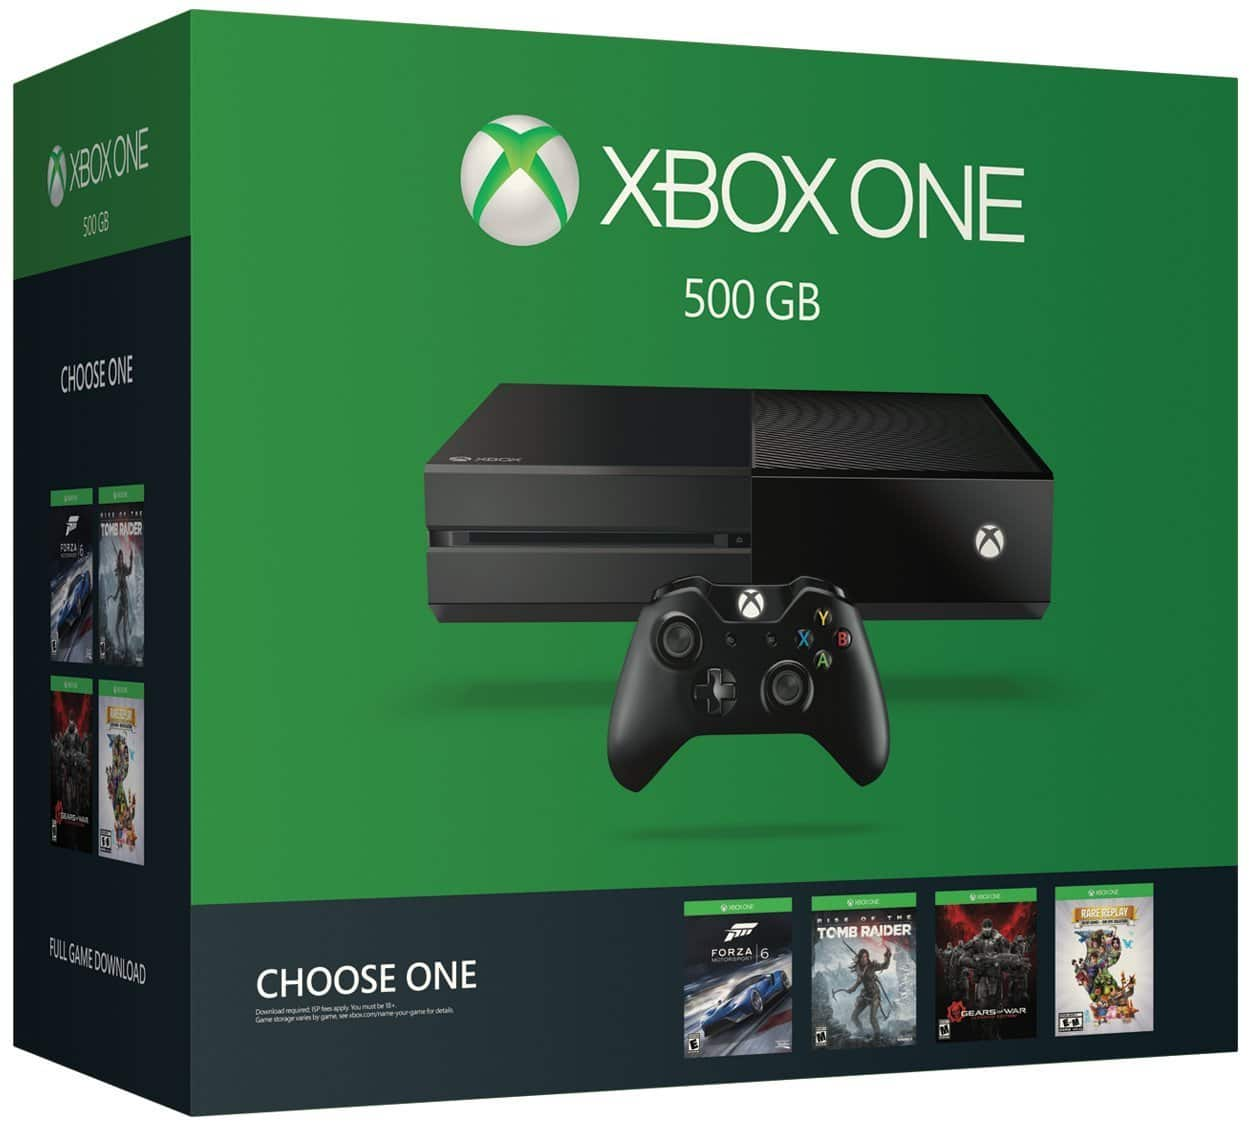 500GB Xbox One Name Your Game Console Bundle + Choice of Game + Extra Controller  $250 + Free Shipping